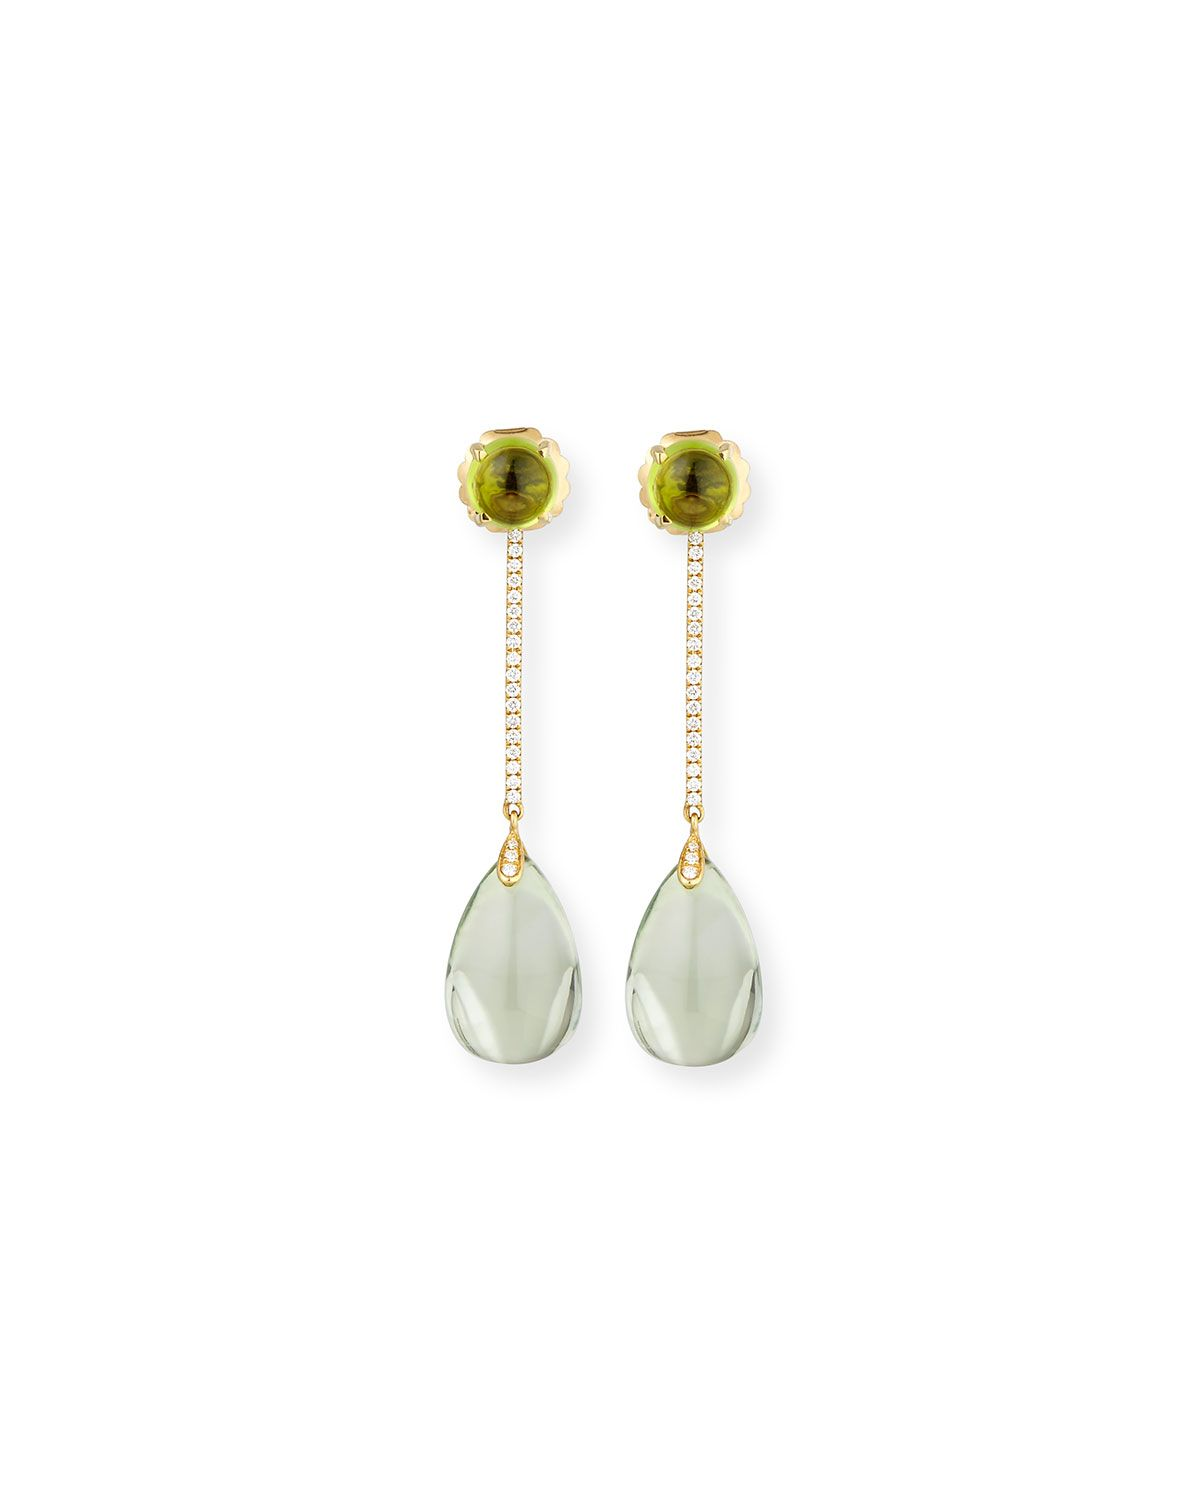 Goshwara Naughty 18K Gold Prasiolite Drop Earrings bftpRC51Wg